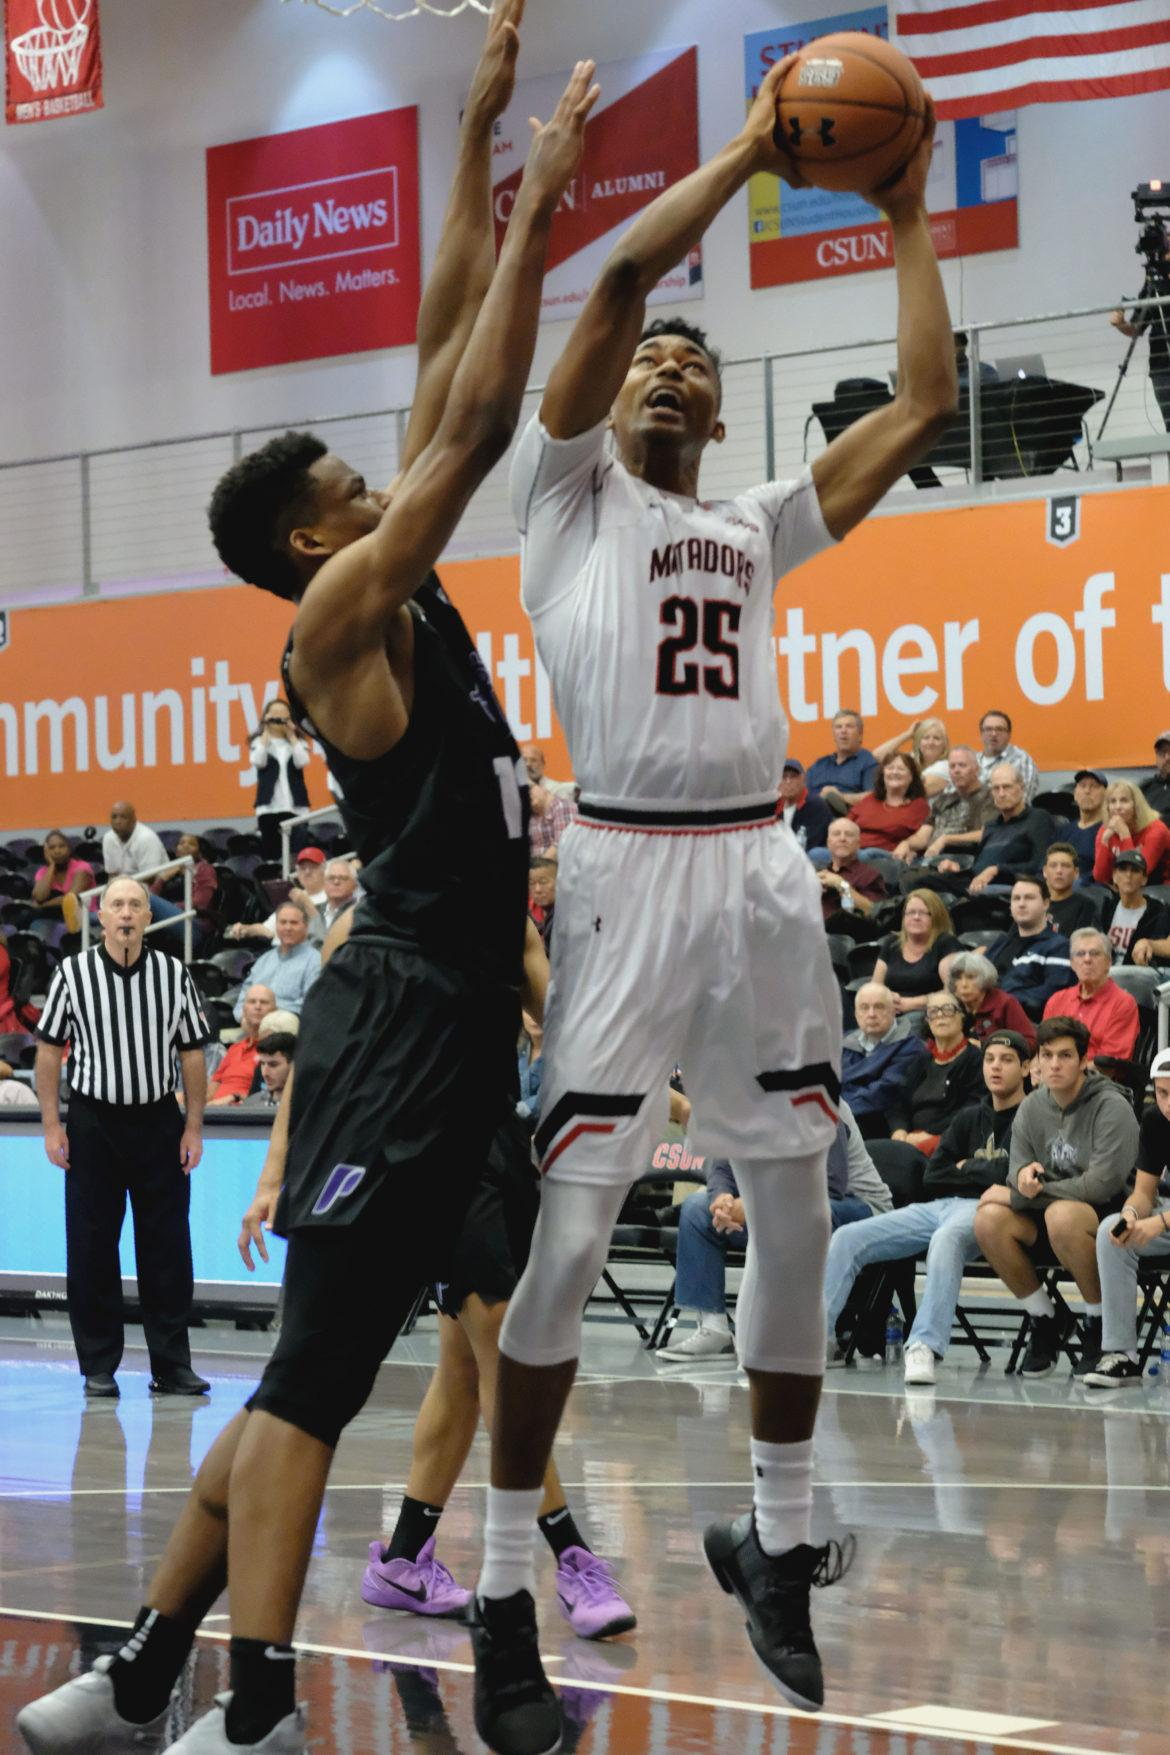 CSUN's Jared Pearre goes up for a bucket against a Portland defender. Photo credit: Jose Morales